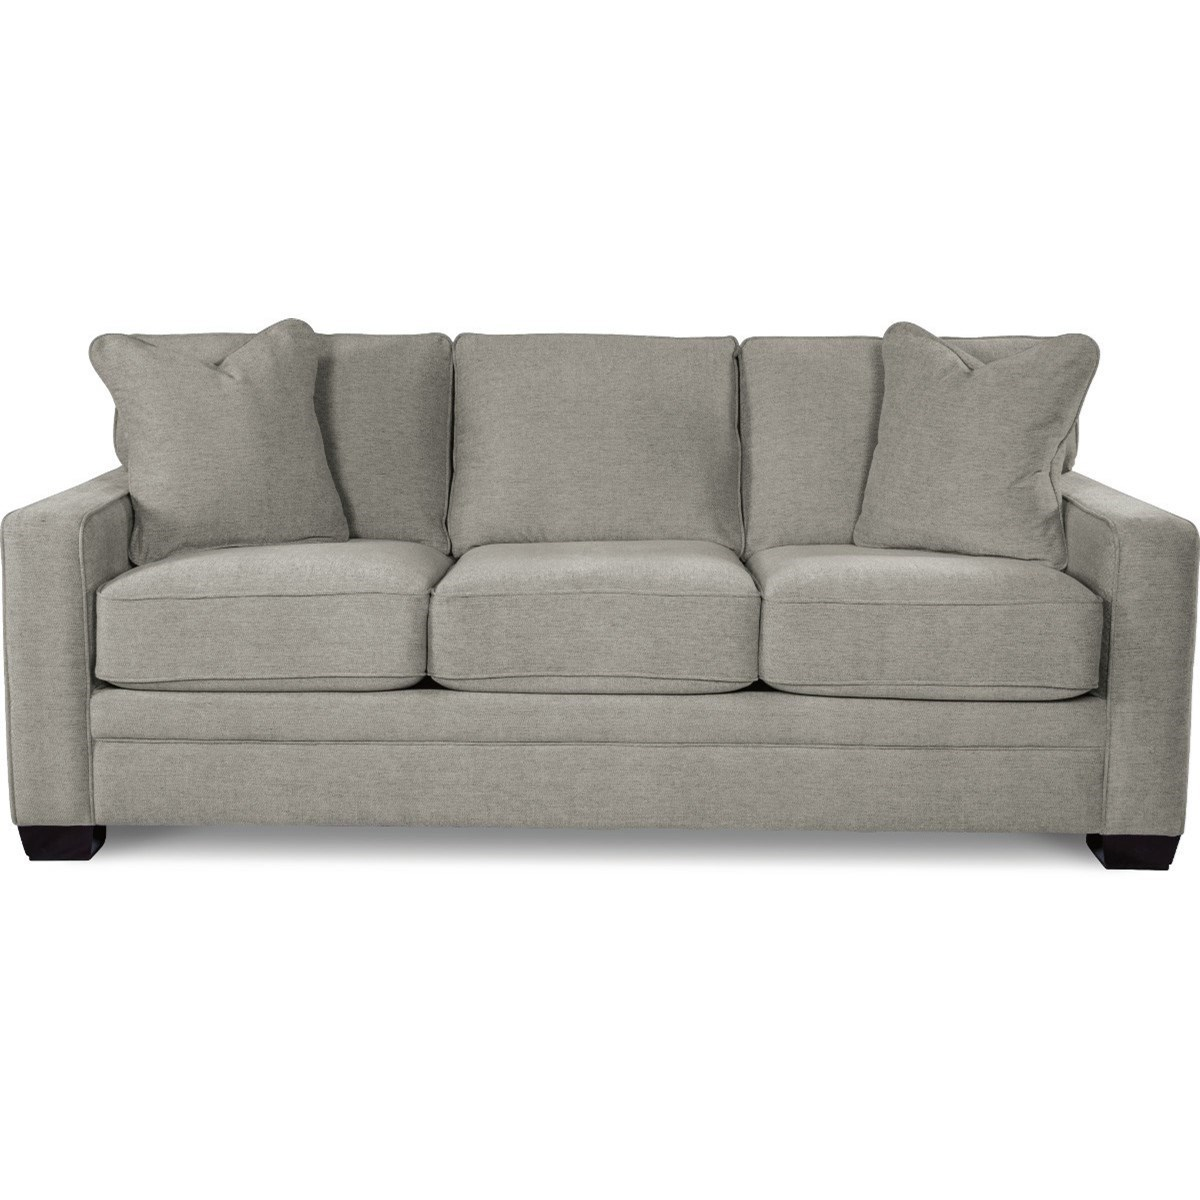 La Z Boy Meyer Contemporary Sofa With Premier ComfortCore Cushions